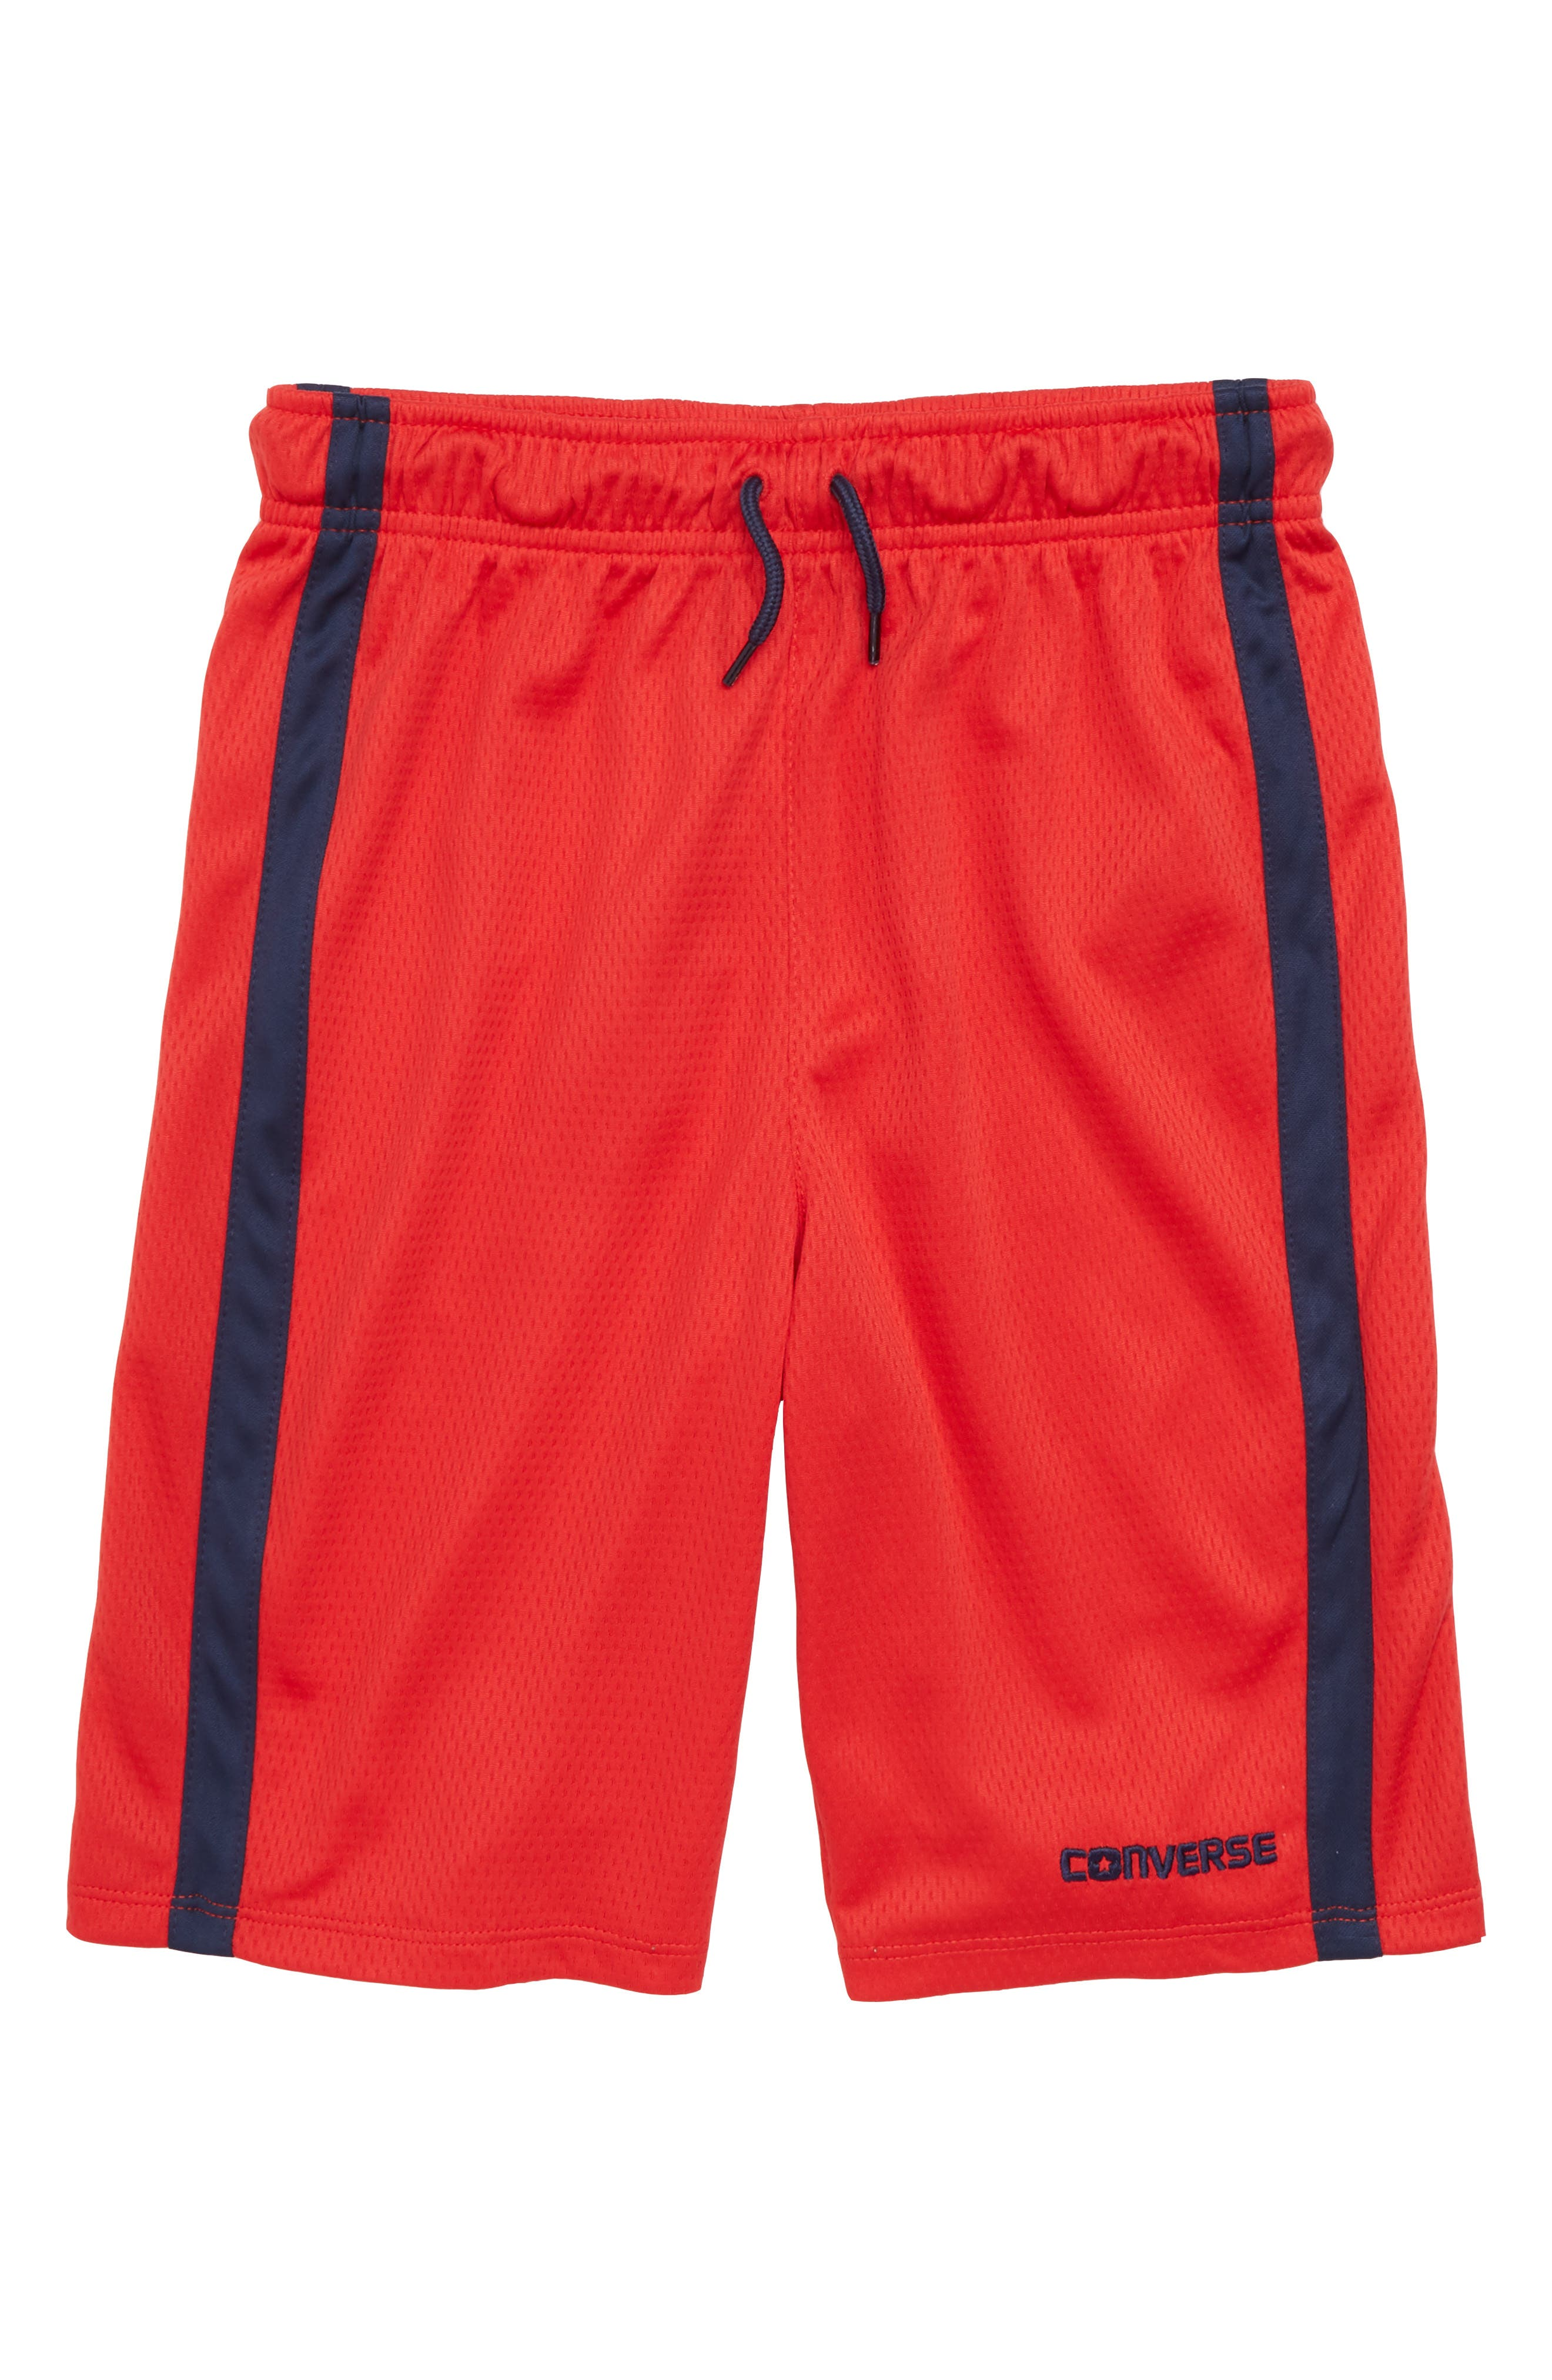 Stripe Mesh Shorts,                         Main,                         color, Converse Red